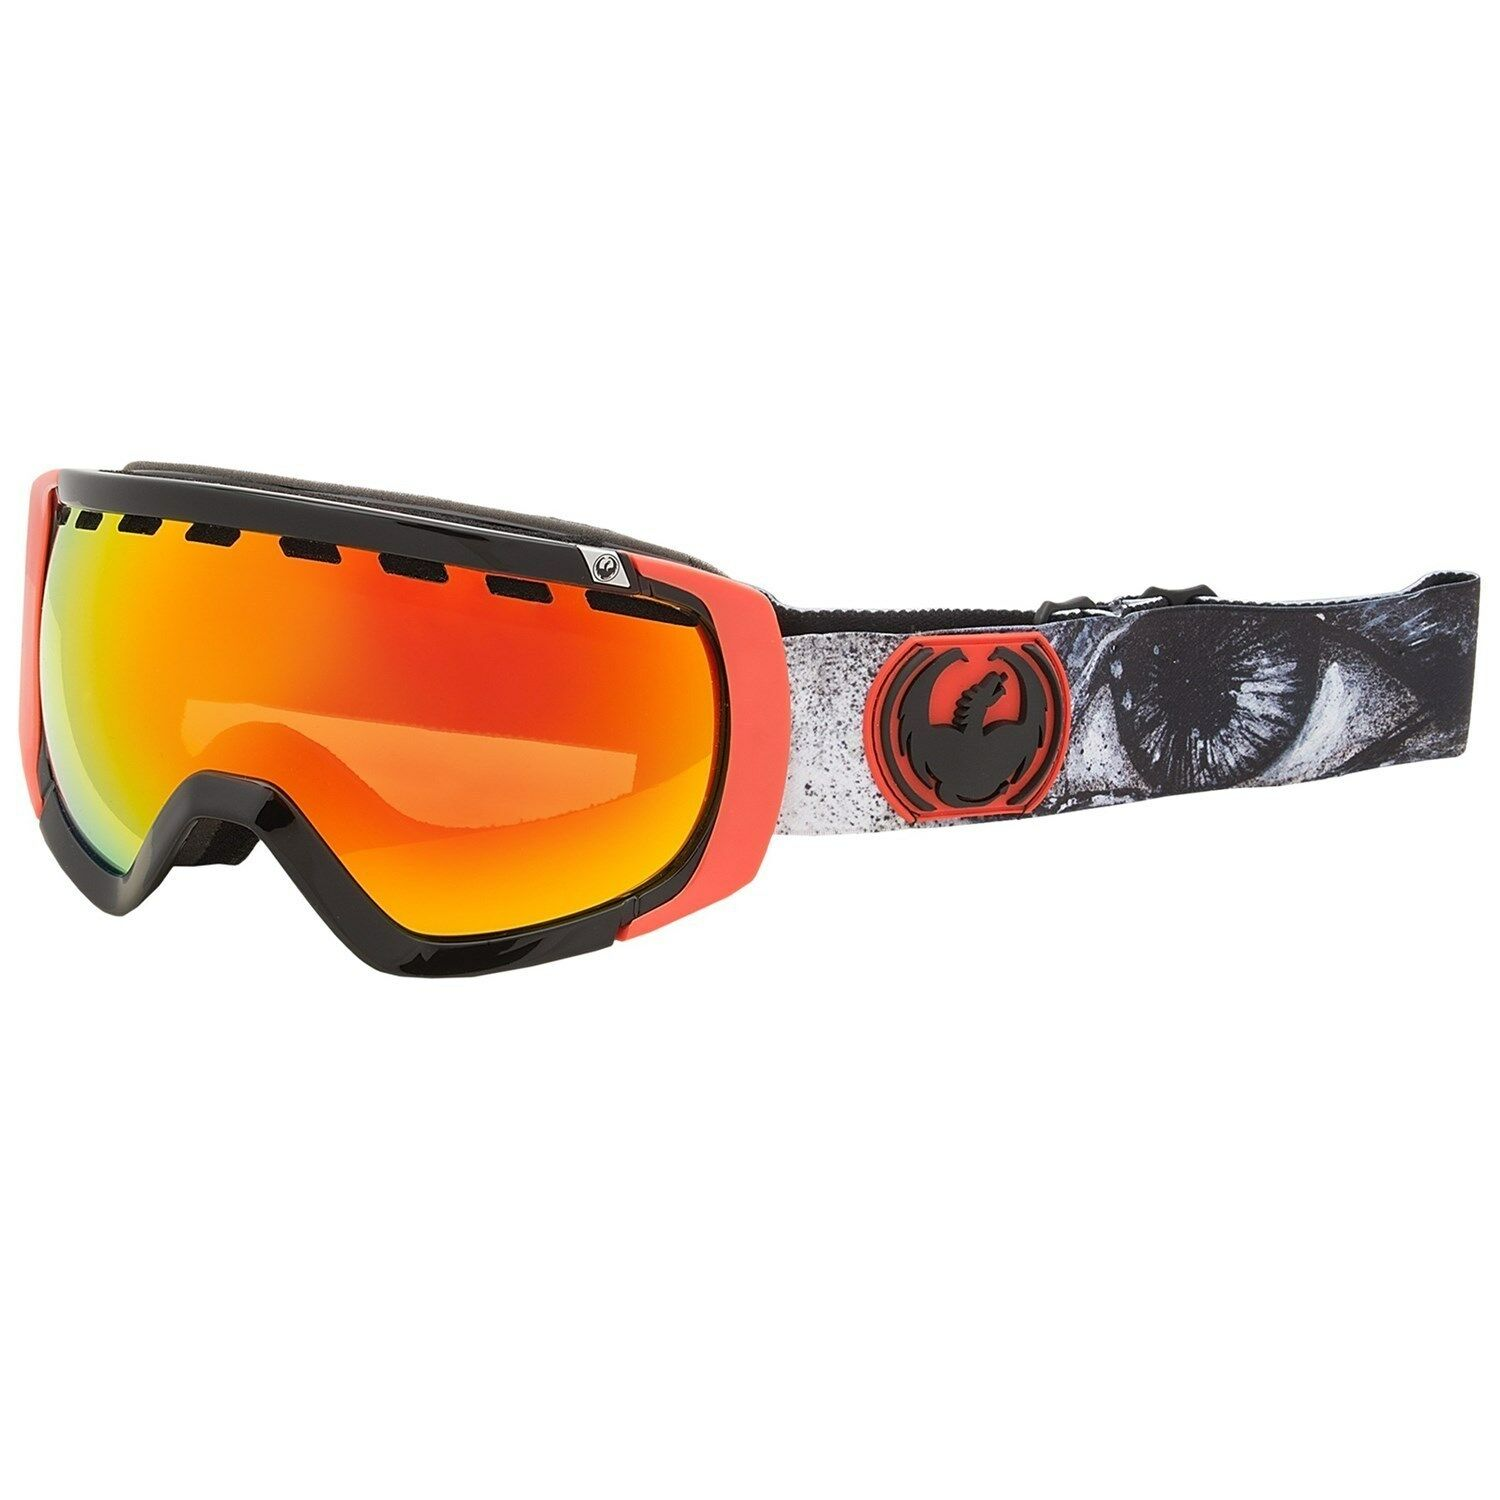 Dragon Rogue Goggles Winter Ski Snow Goggles Ionized Lens Monster Dap/Red Ionized